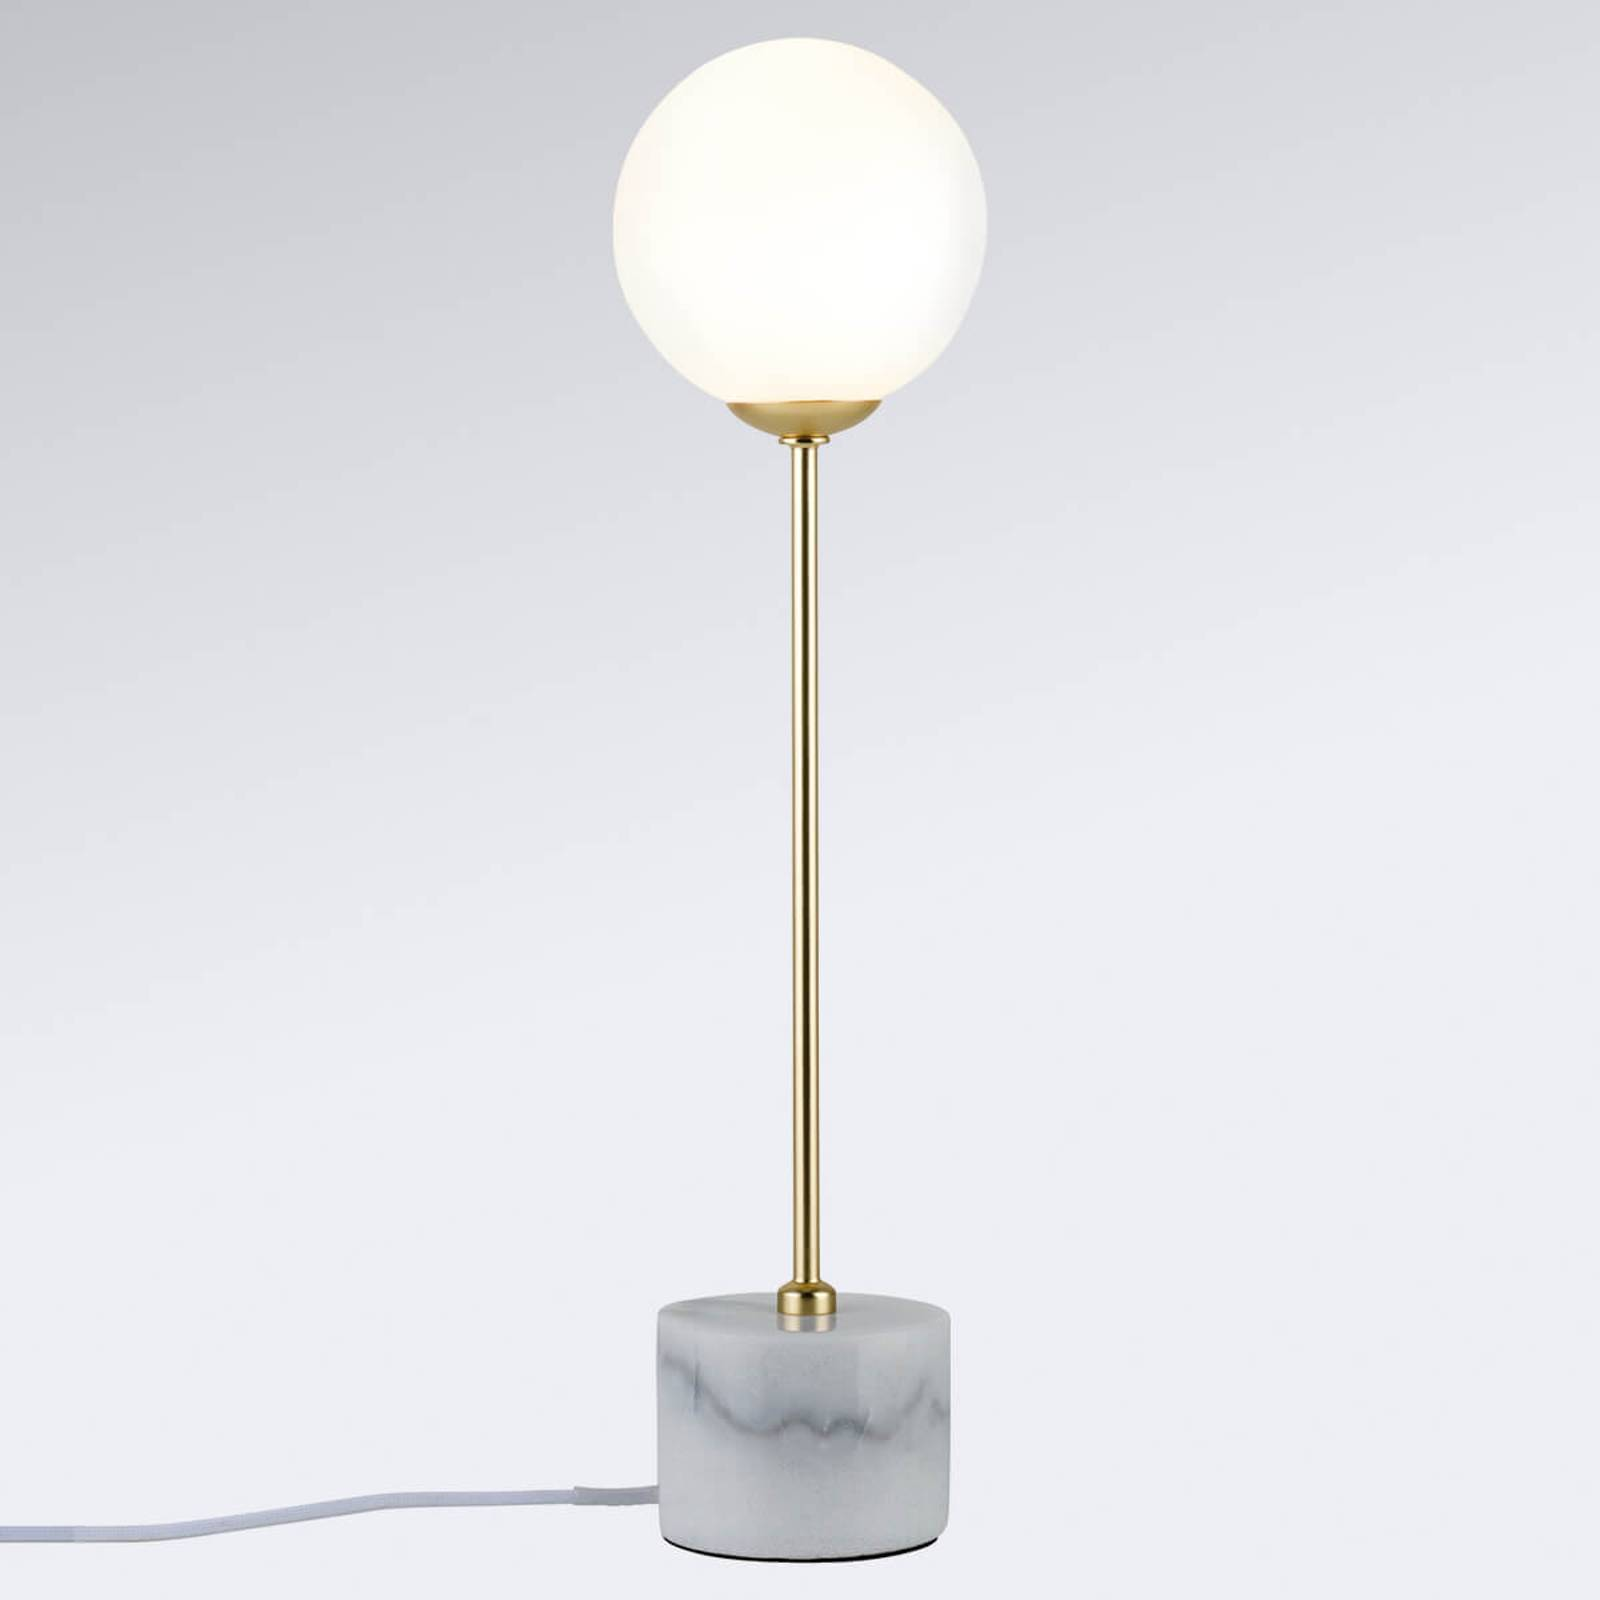 Moa- puristic table lamp with marble socket from Paulmann